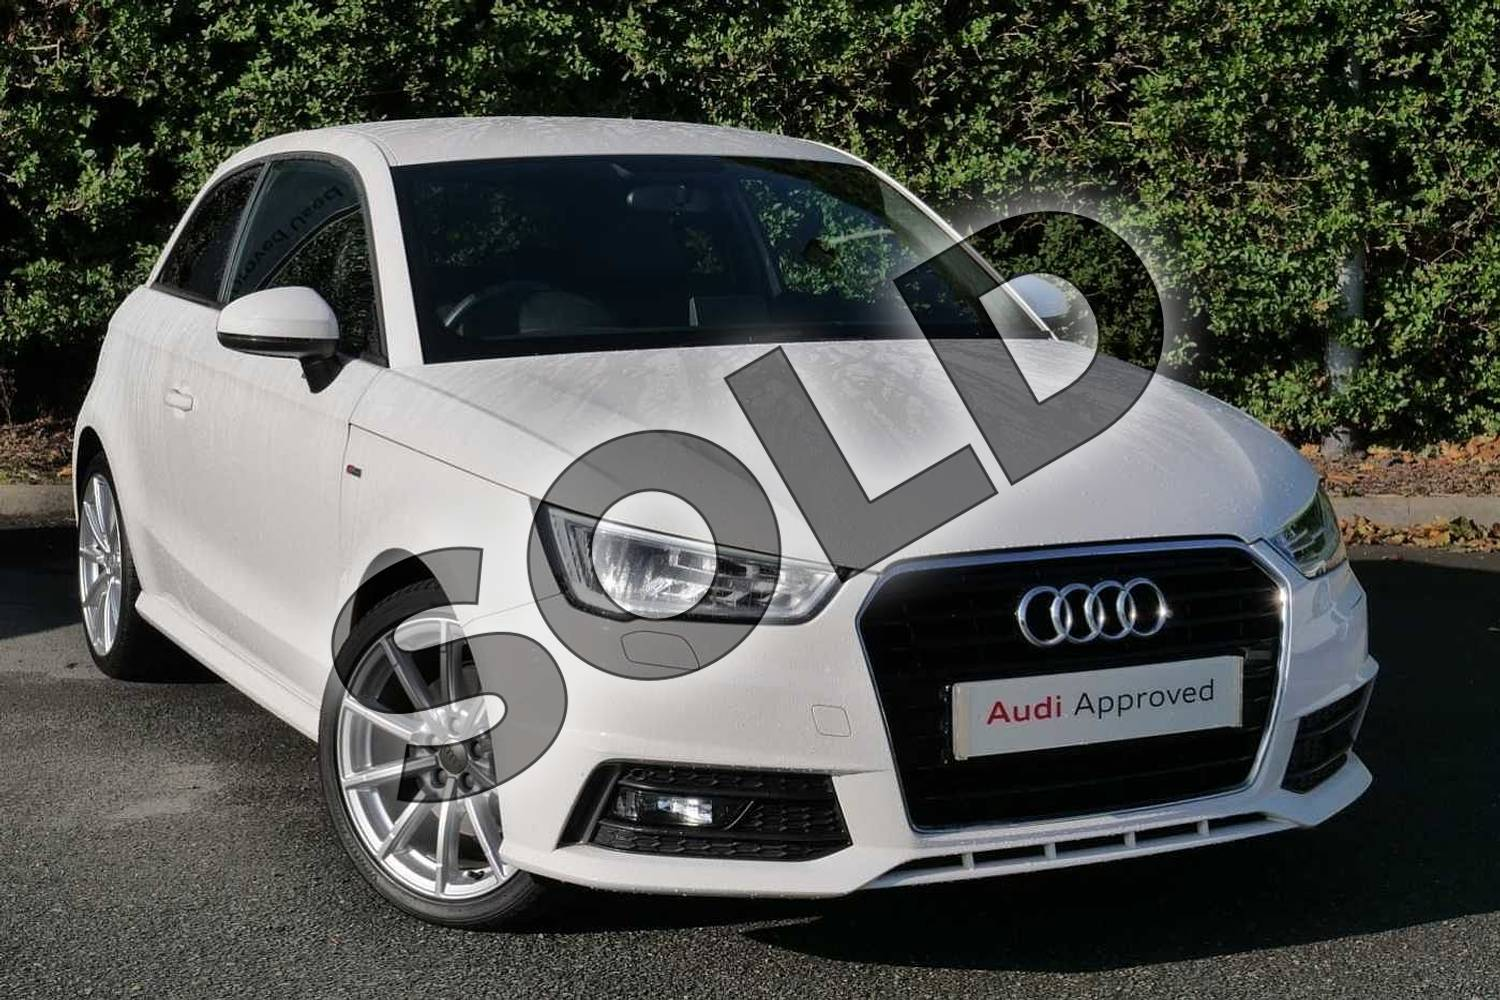 2017 Audi A1 Hatchback 1.4 TFSI S Line 3dr in Shell White at Worcester Audi